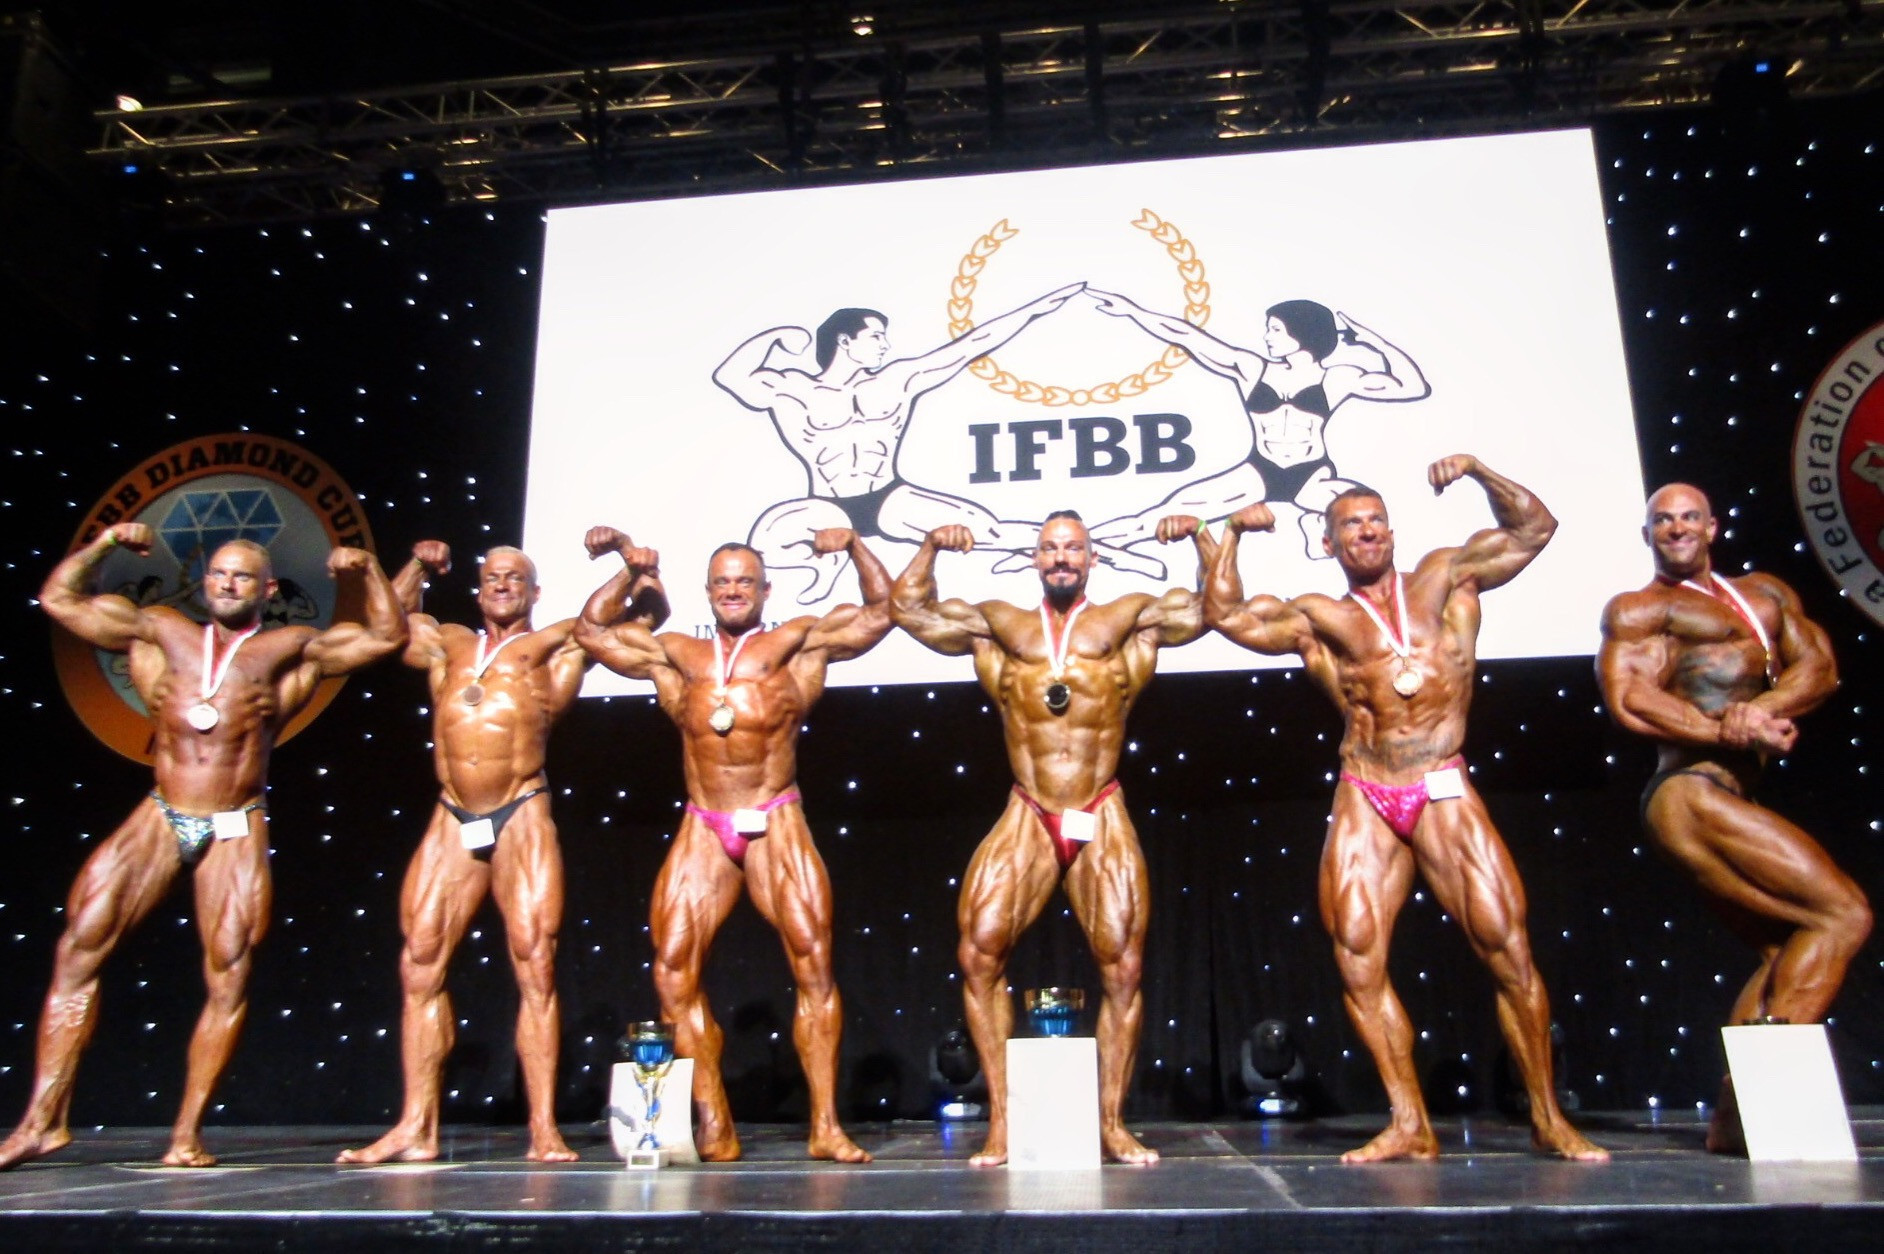 The IFBB Diamond Cup Malta has been rescheduled from April to August 2020 ©IFBB